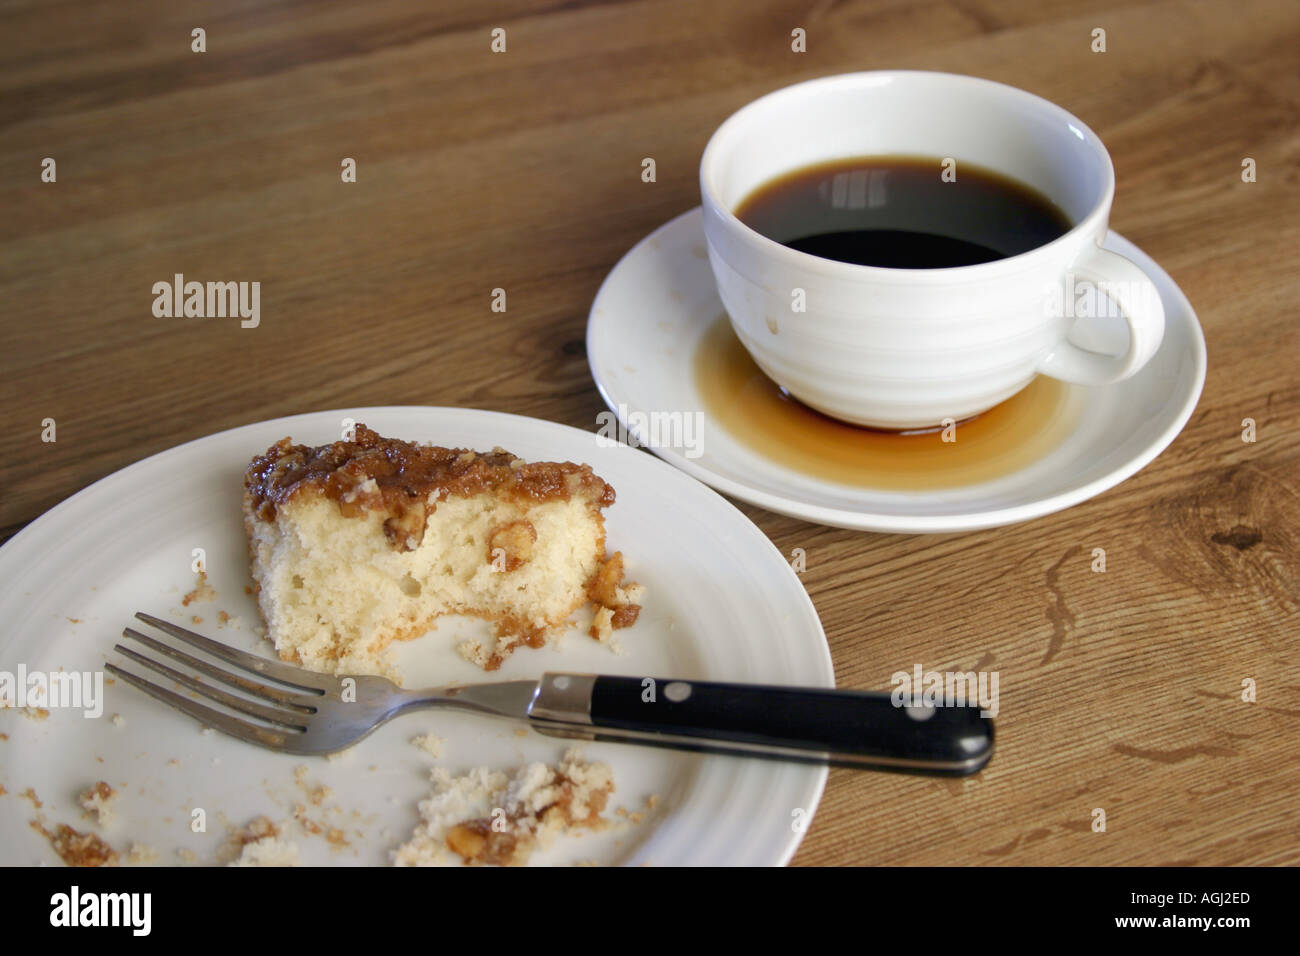 Morning Coffee With Cake